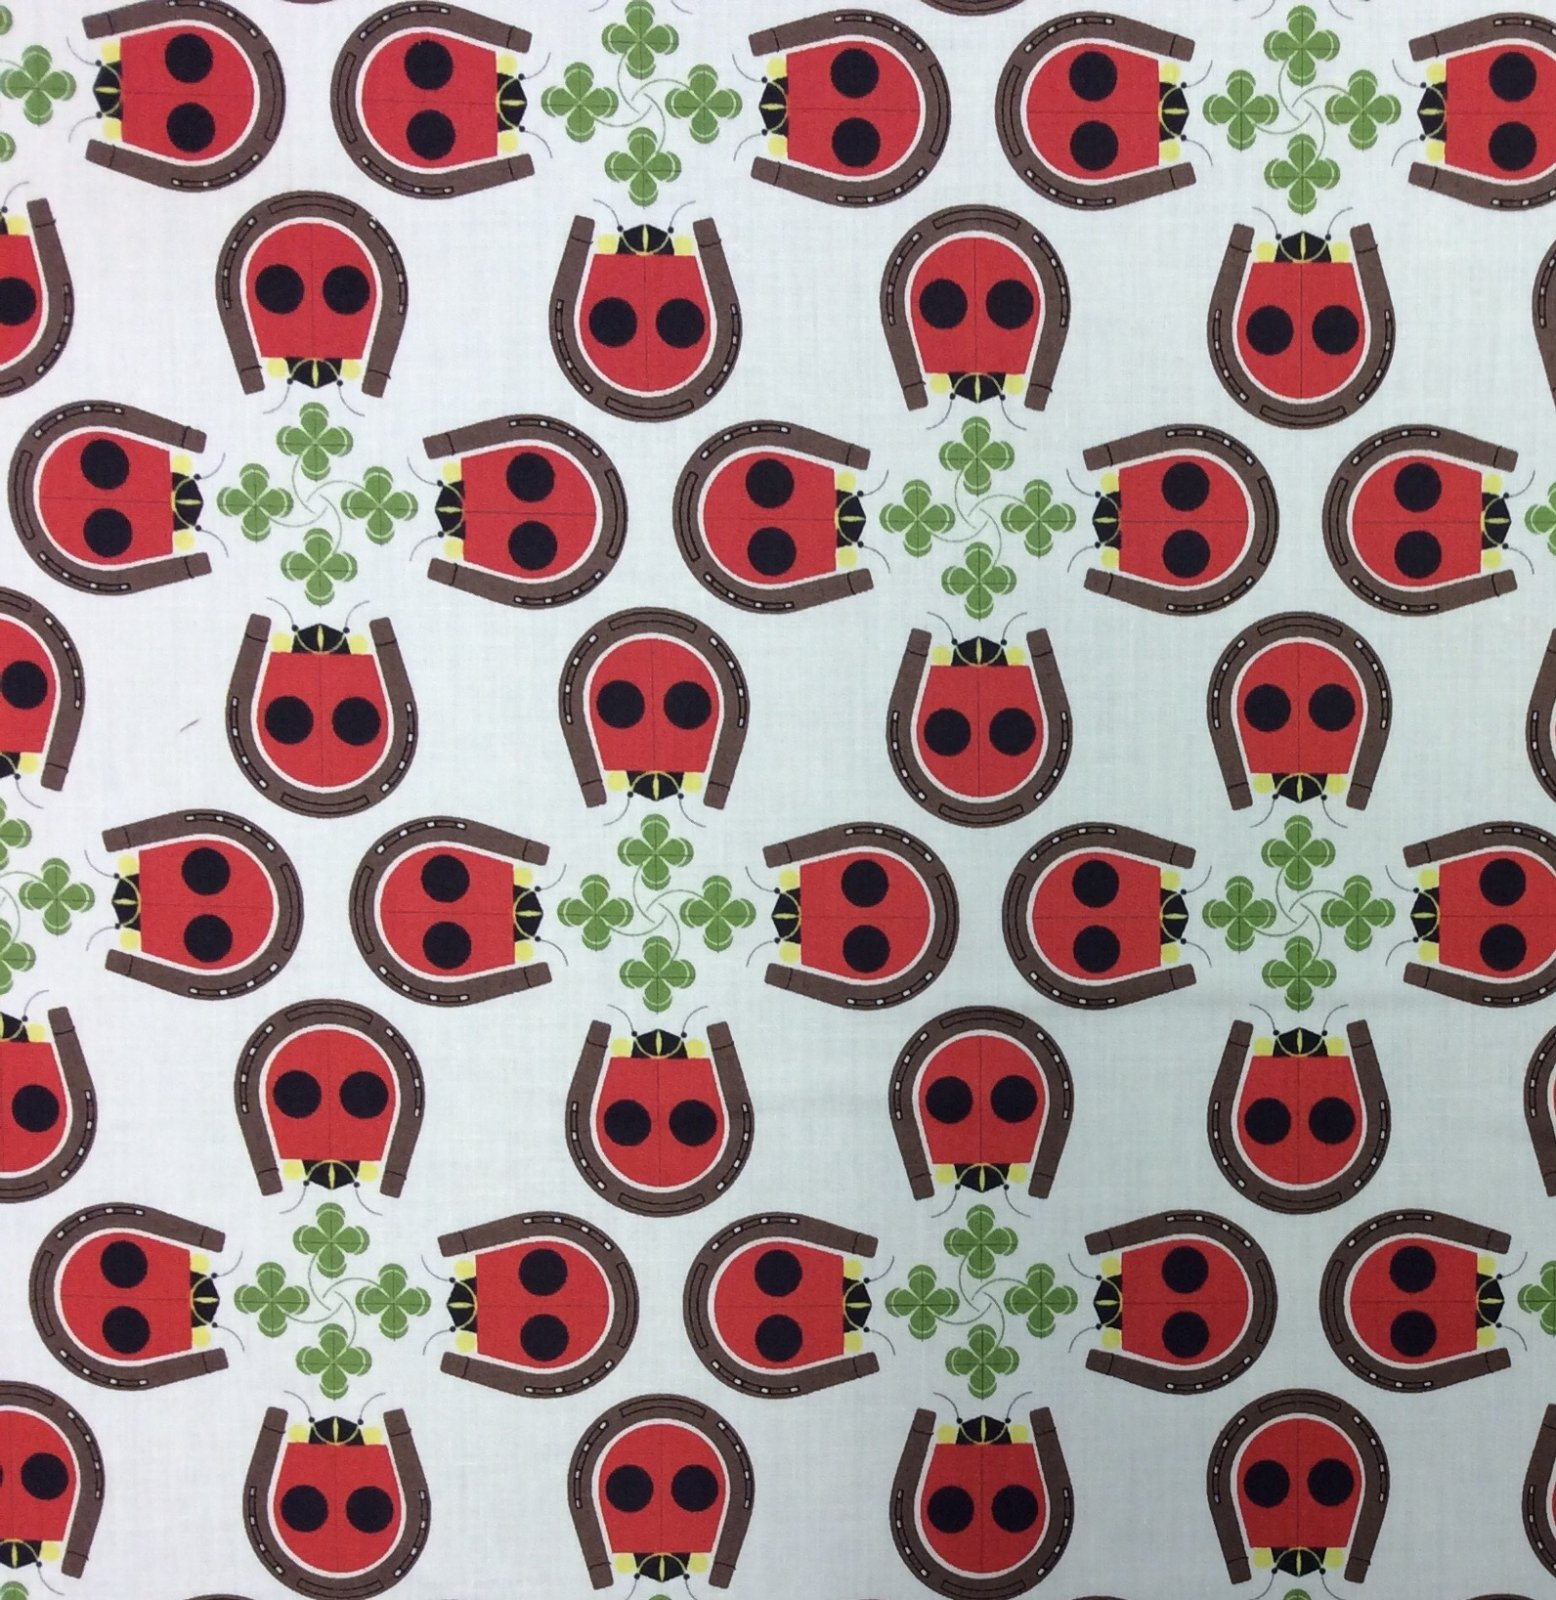 Charley Harper Lucky Ladybug Backyard Lady Bug Insect Cotton Organic Quilt Fabric CHB77